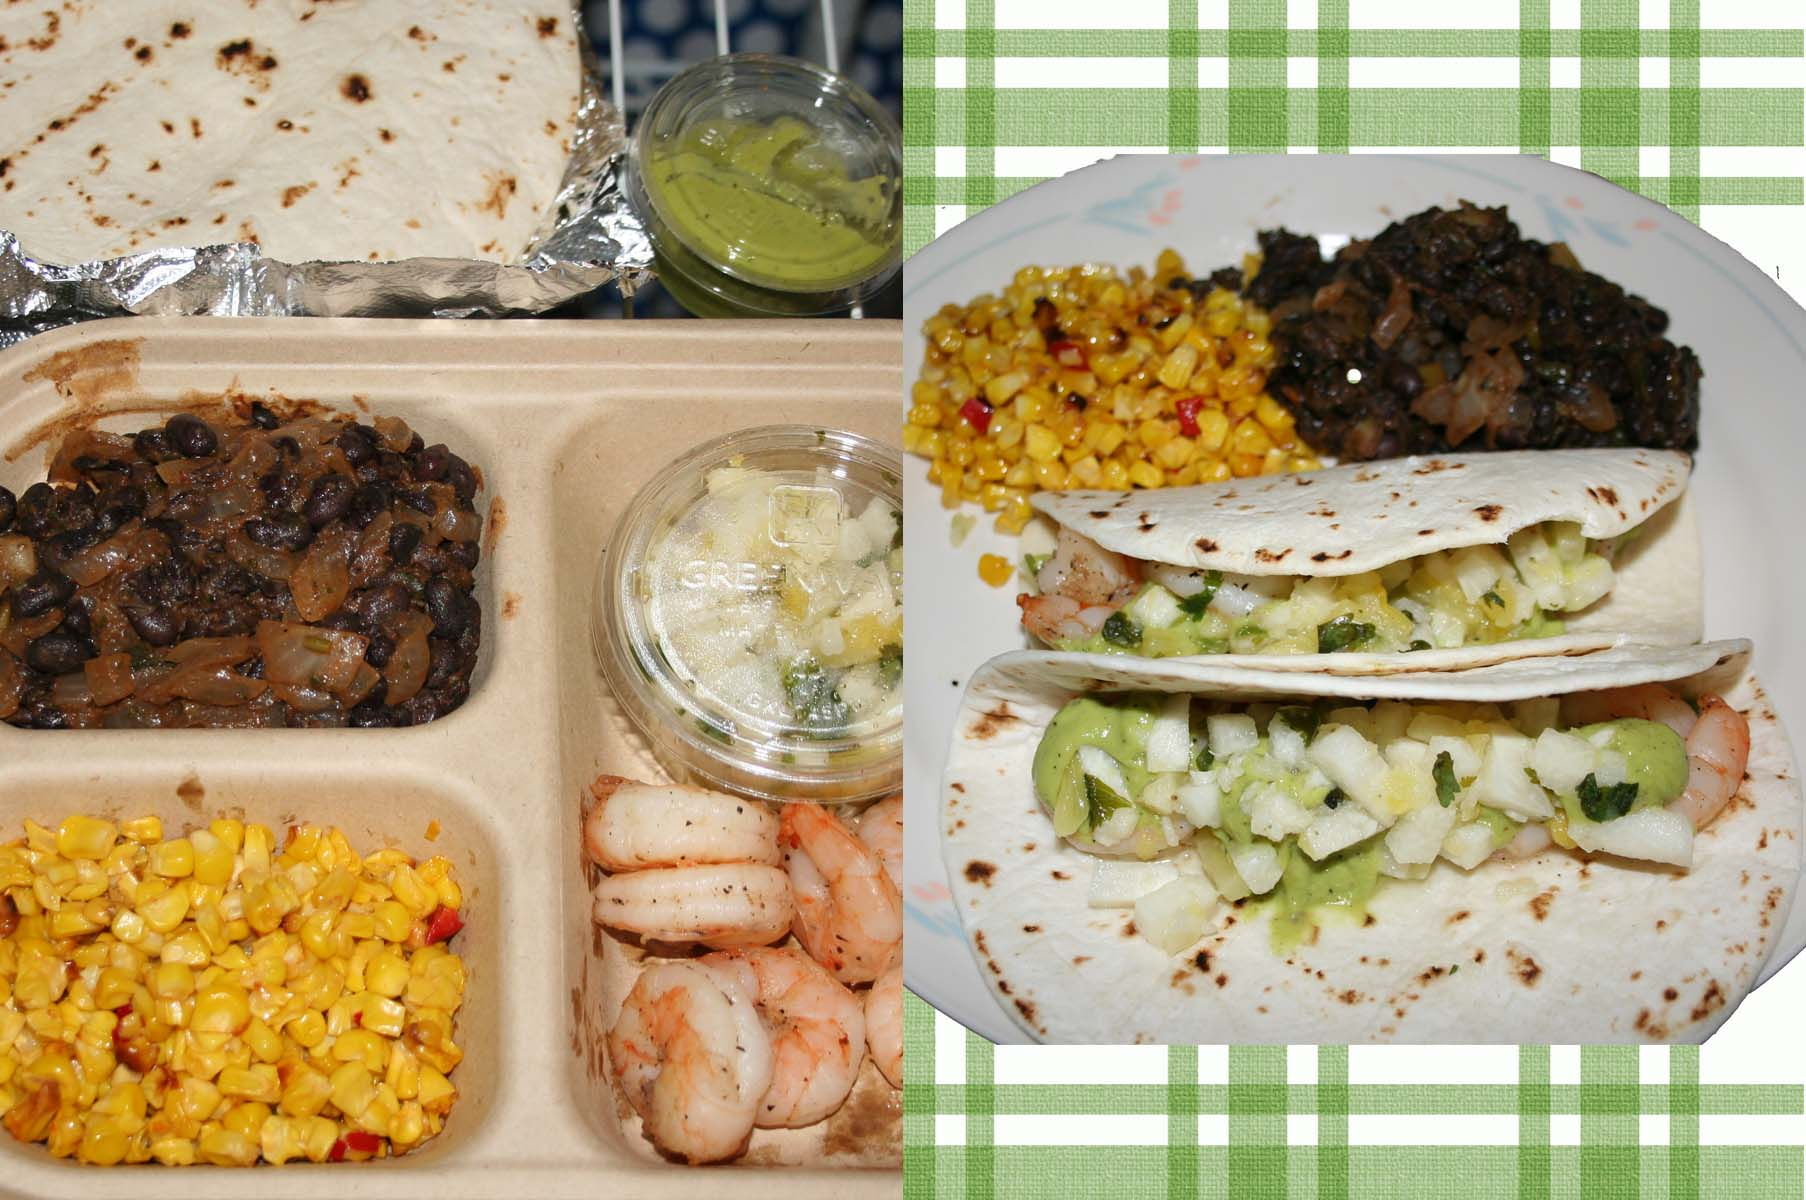 Shrimp tacos with corn and black beans was a meal worth ordering again. (Photos: Mark Heckathorn/DC on Heels)